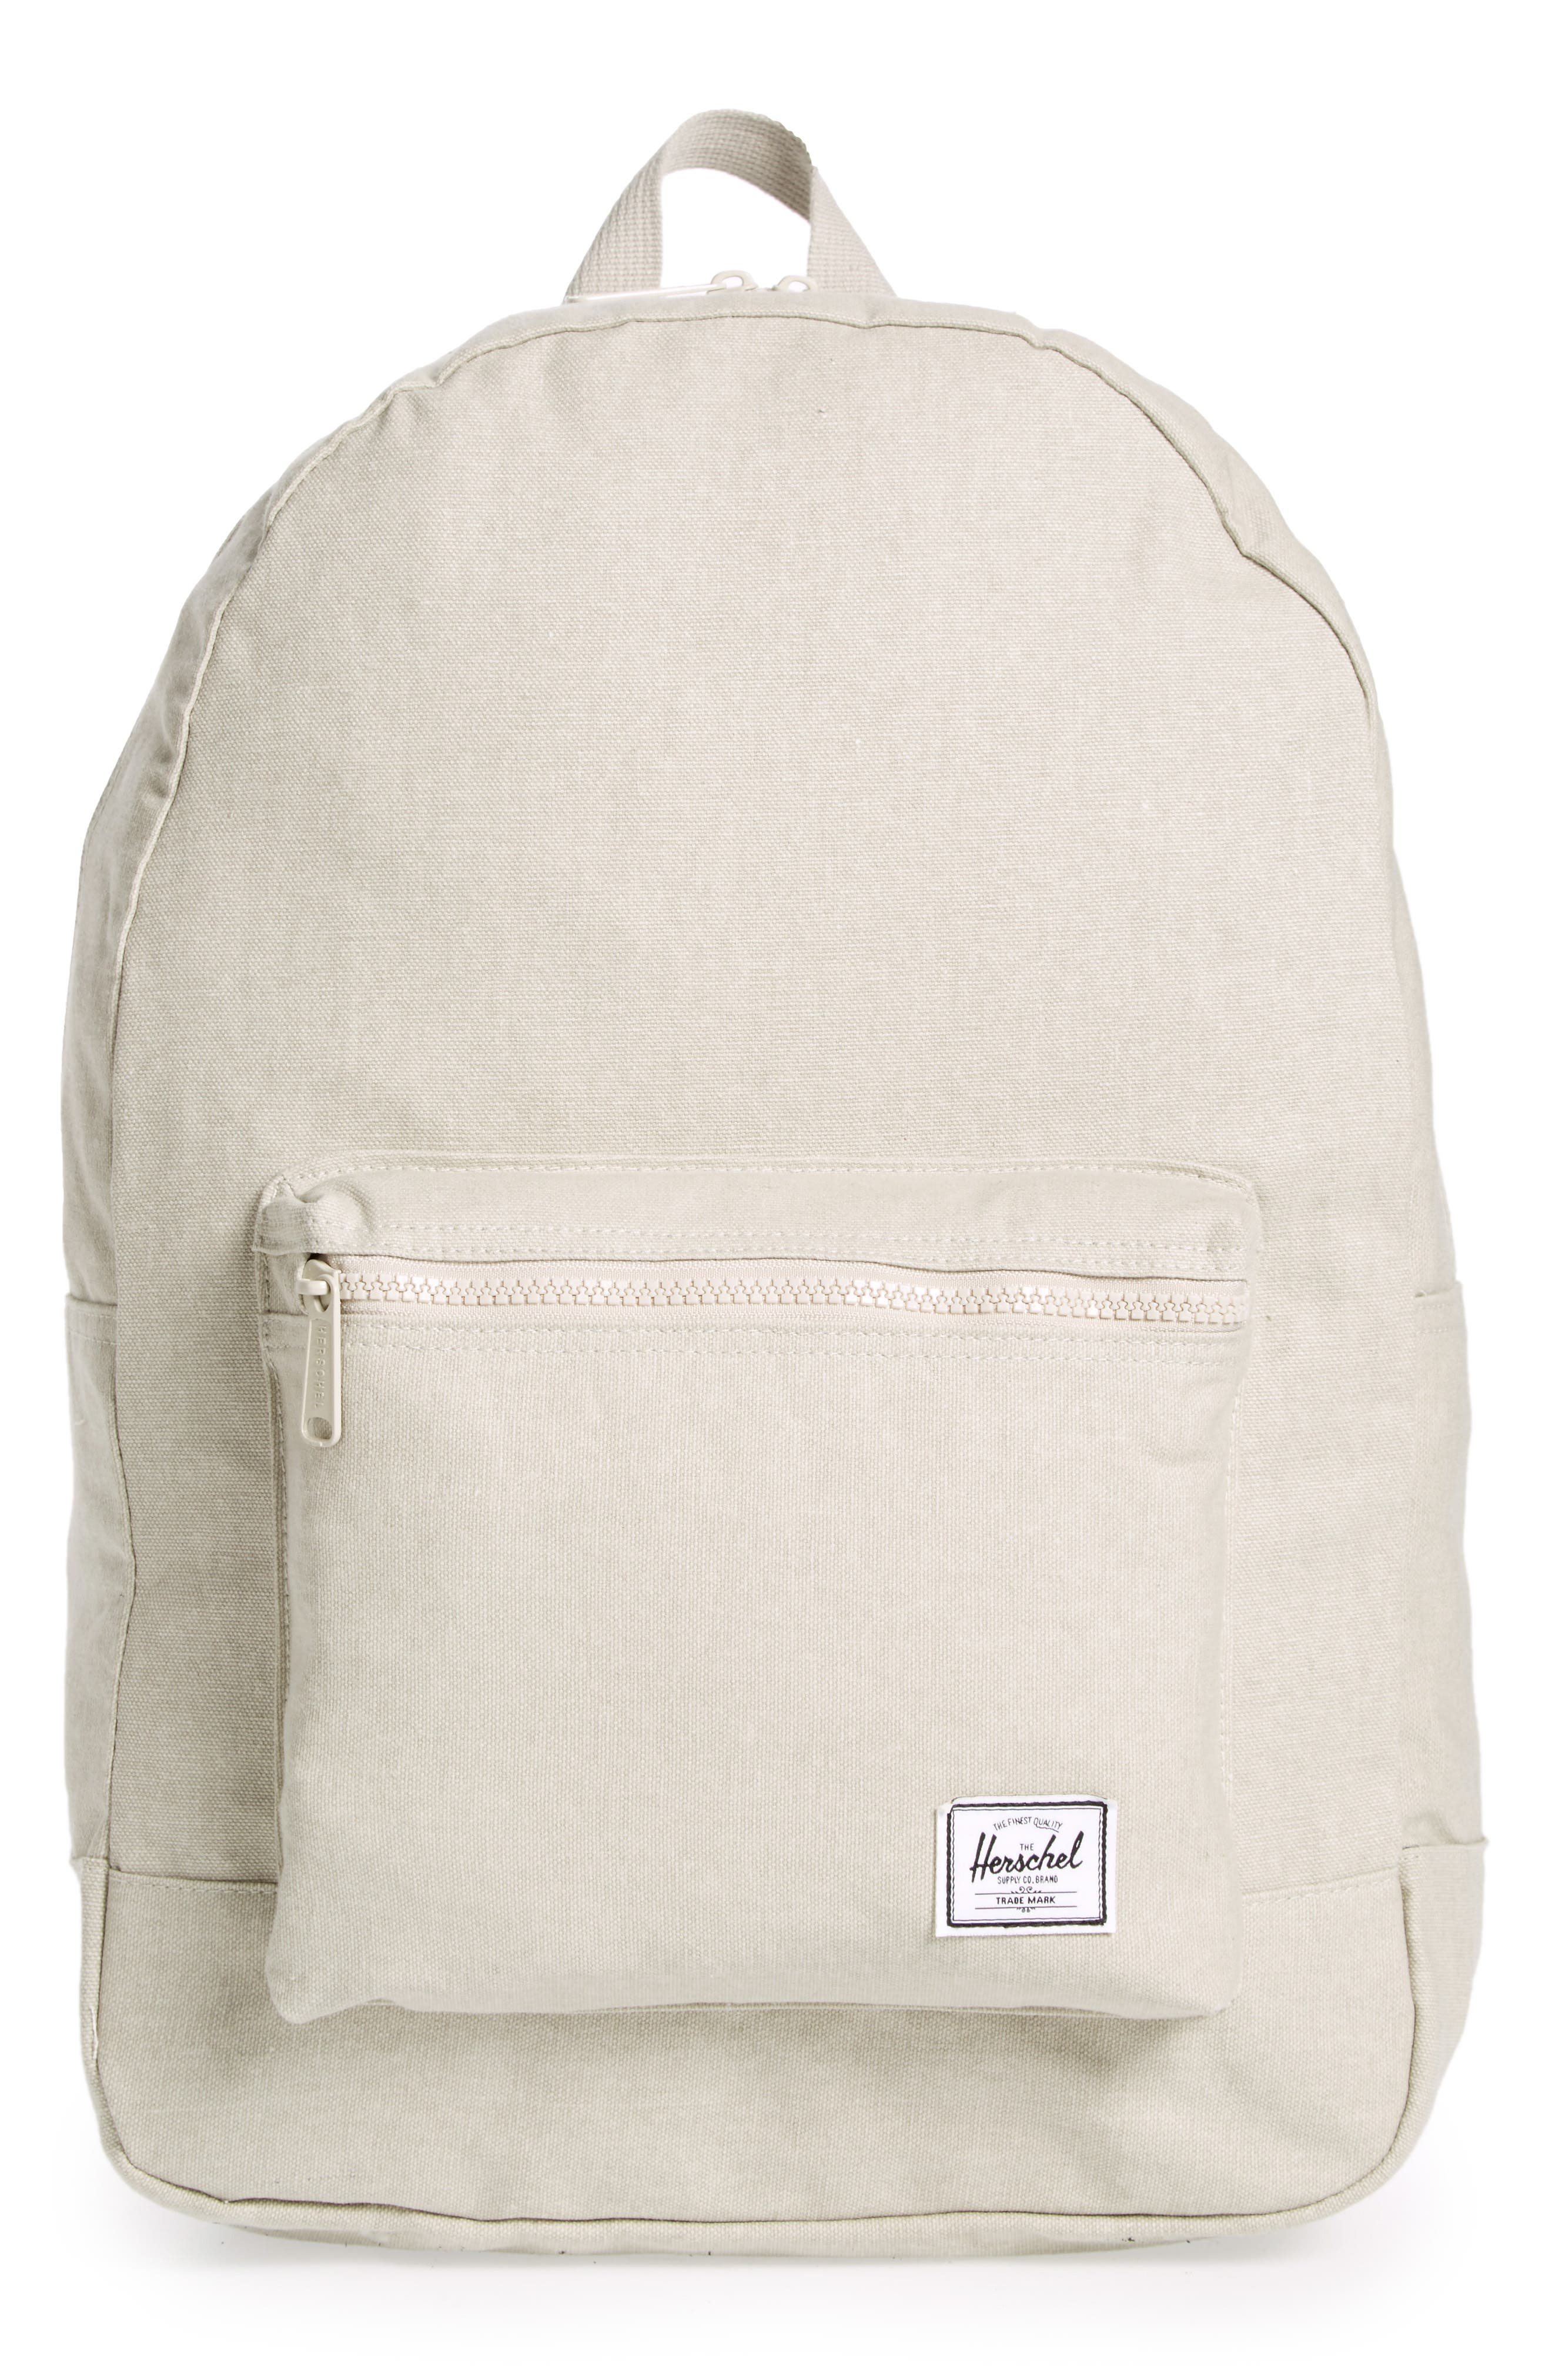 Cotton Casuals Daypack Backpack,                             Main thumbnail 6, color,